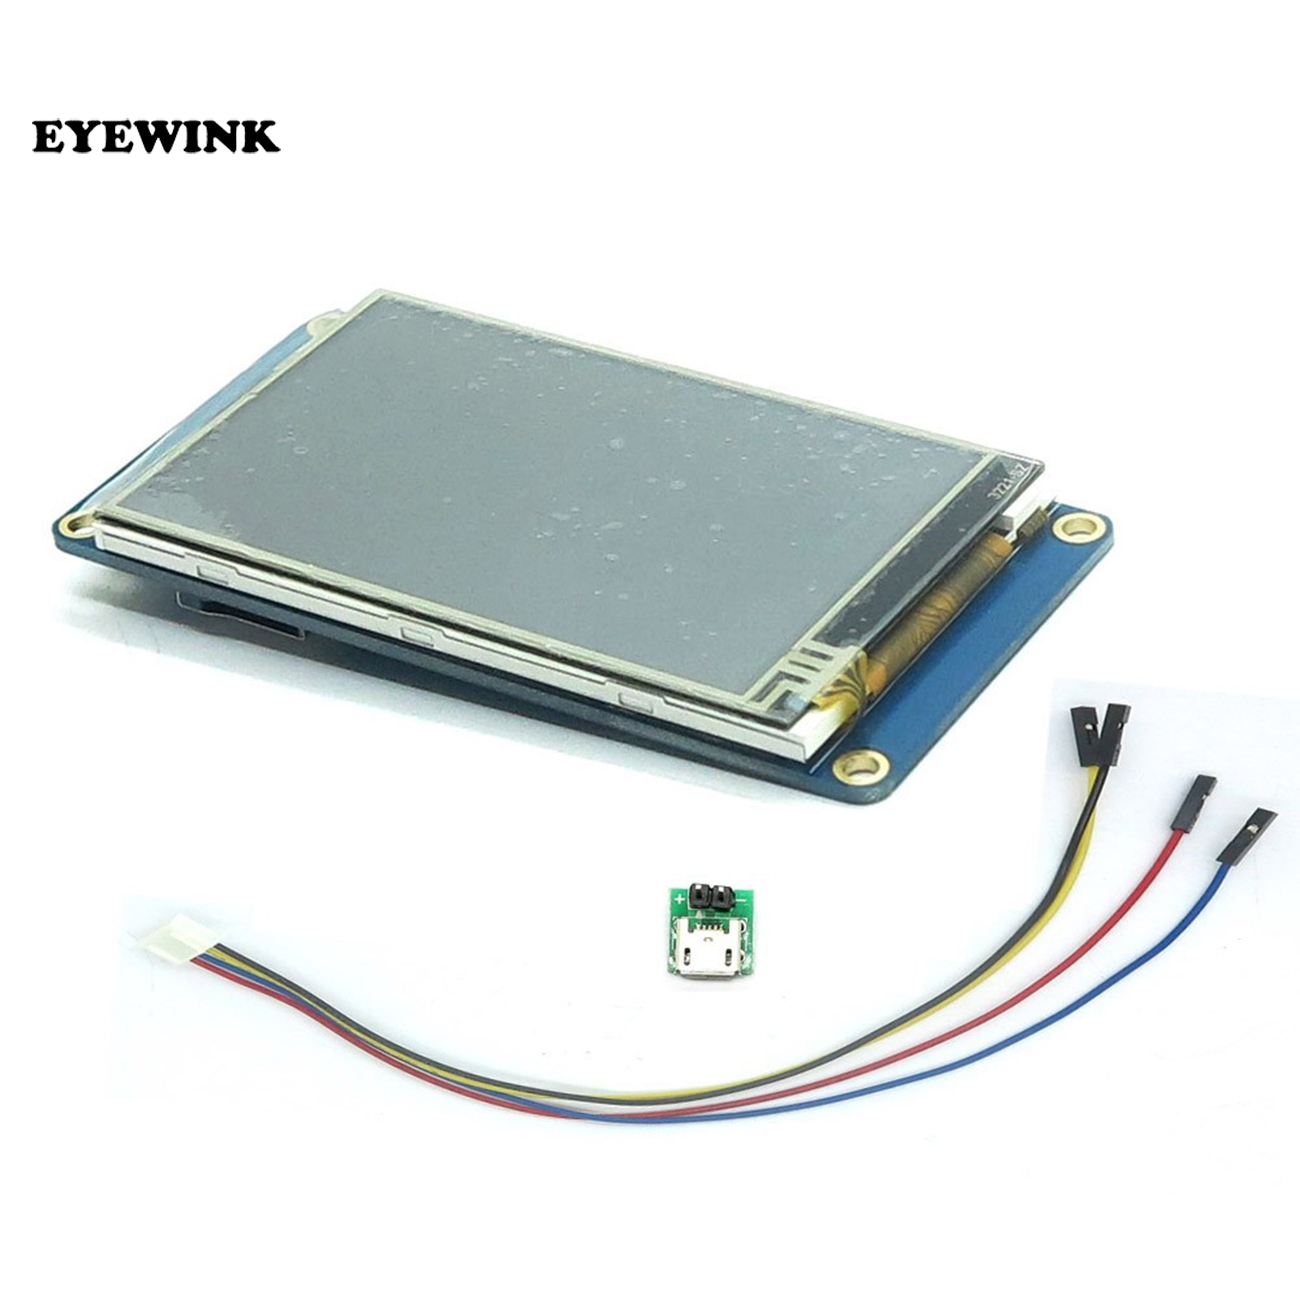 "EYEWINK Nextion 3.2"" TFT 400X240 Touch Screen Display HMI LCD Display Module Touch Panel for arduino TFT raspberry pi-in LCD Modules from Electronic Components & Supplies"